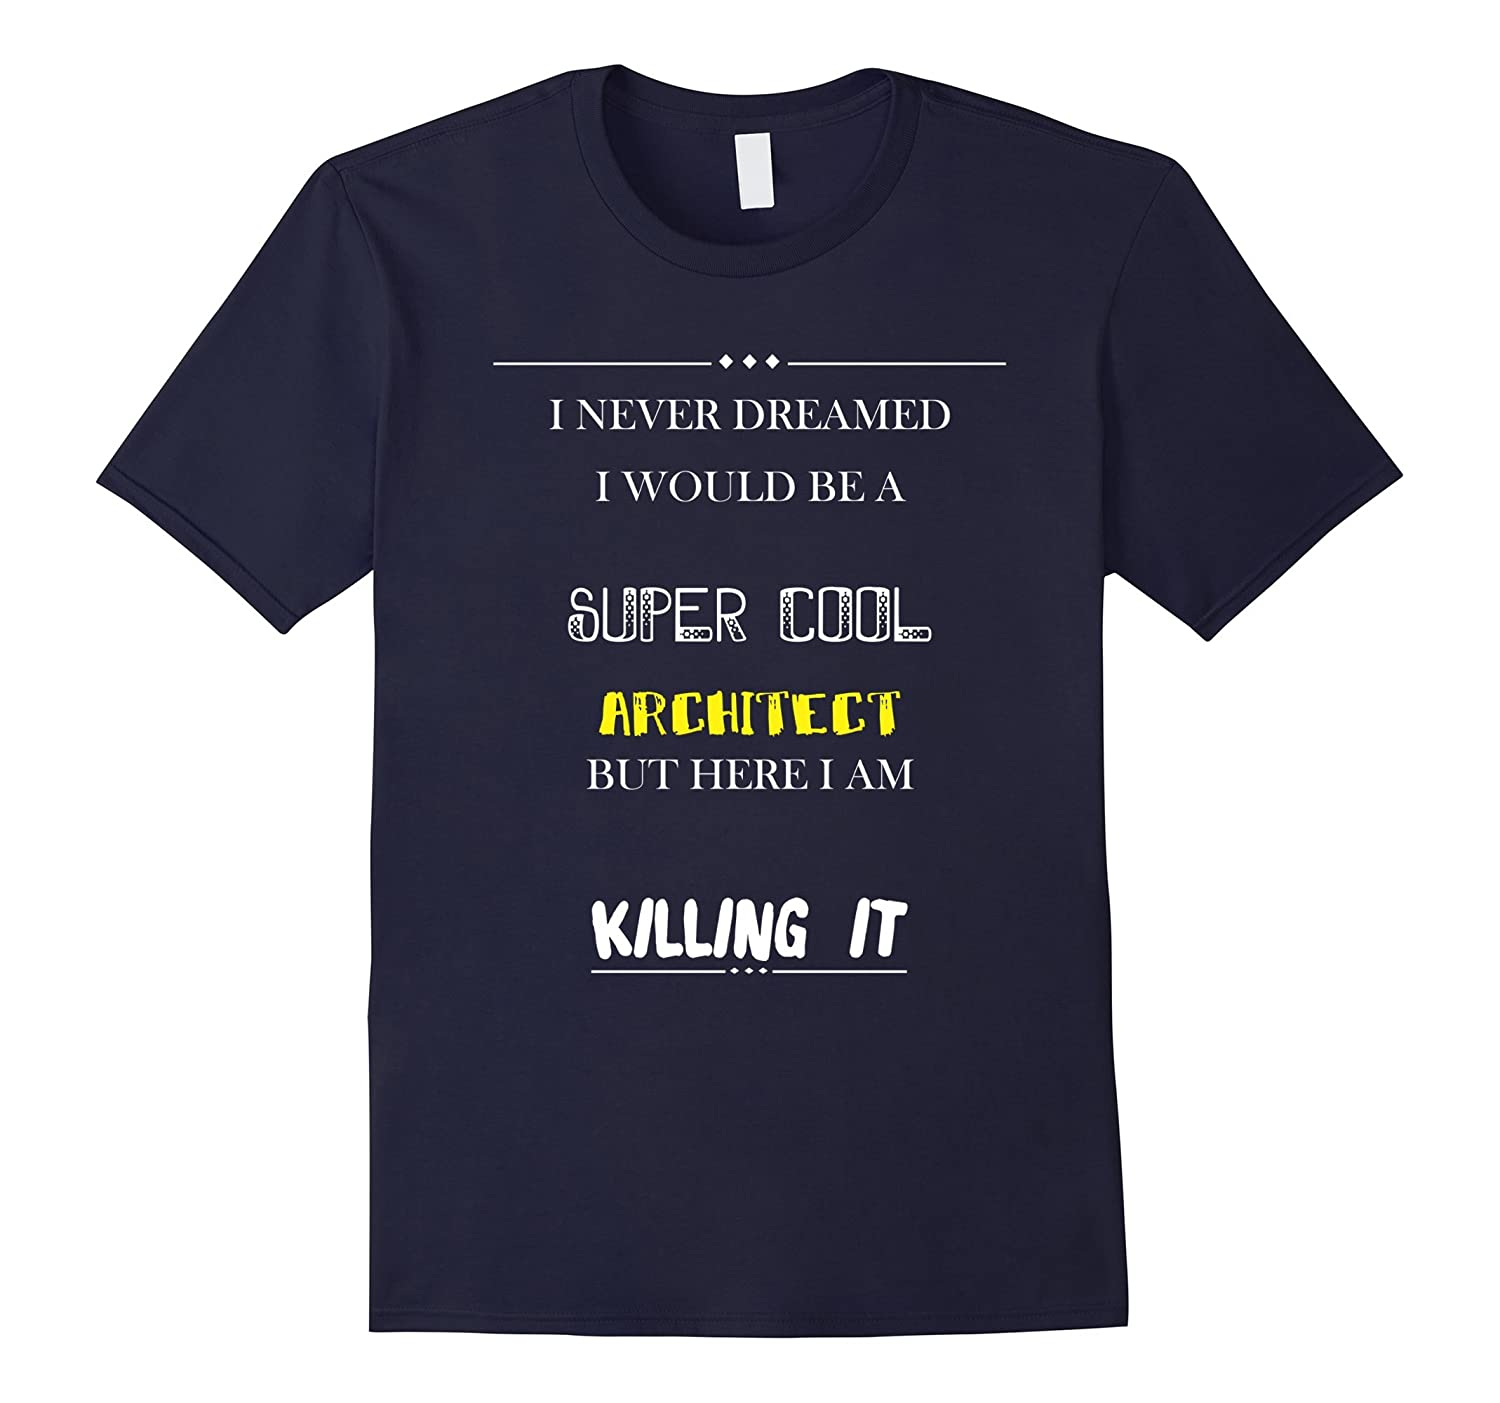 Architect - I never dreamed I would be a super cool T-shirt-TH